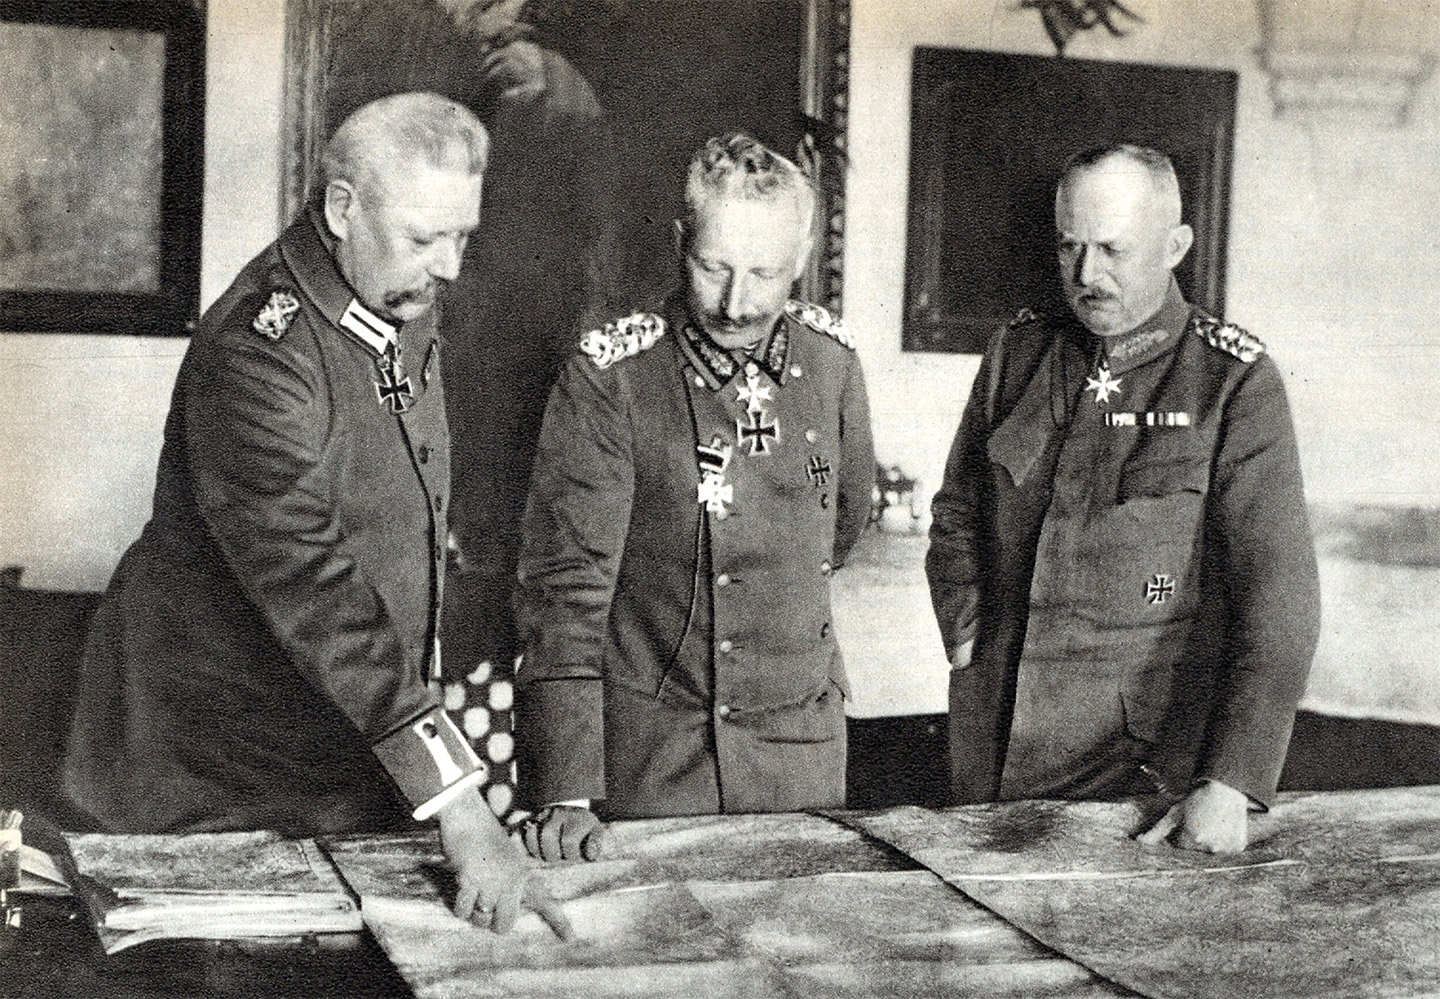 Paul von Hindenburg and Erich Ludendorff